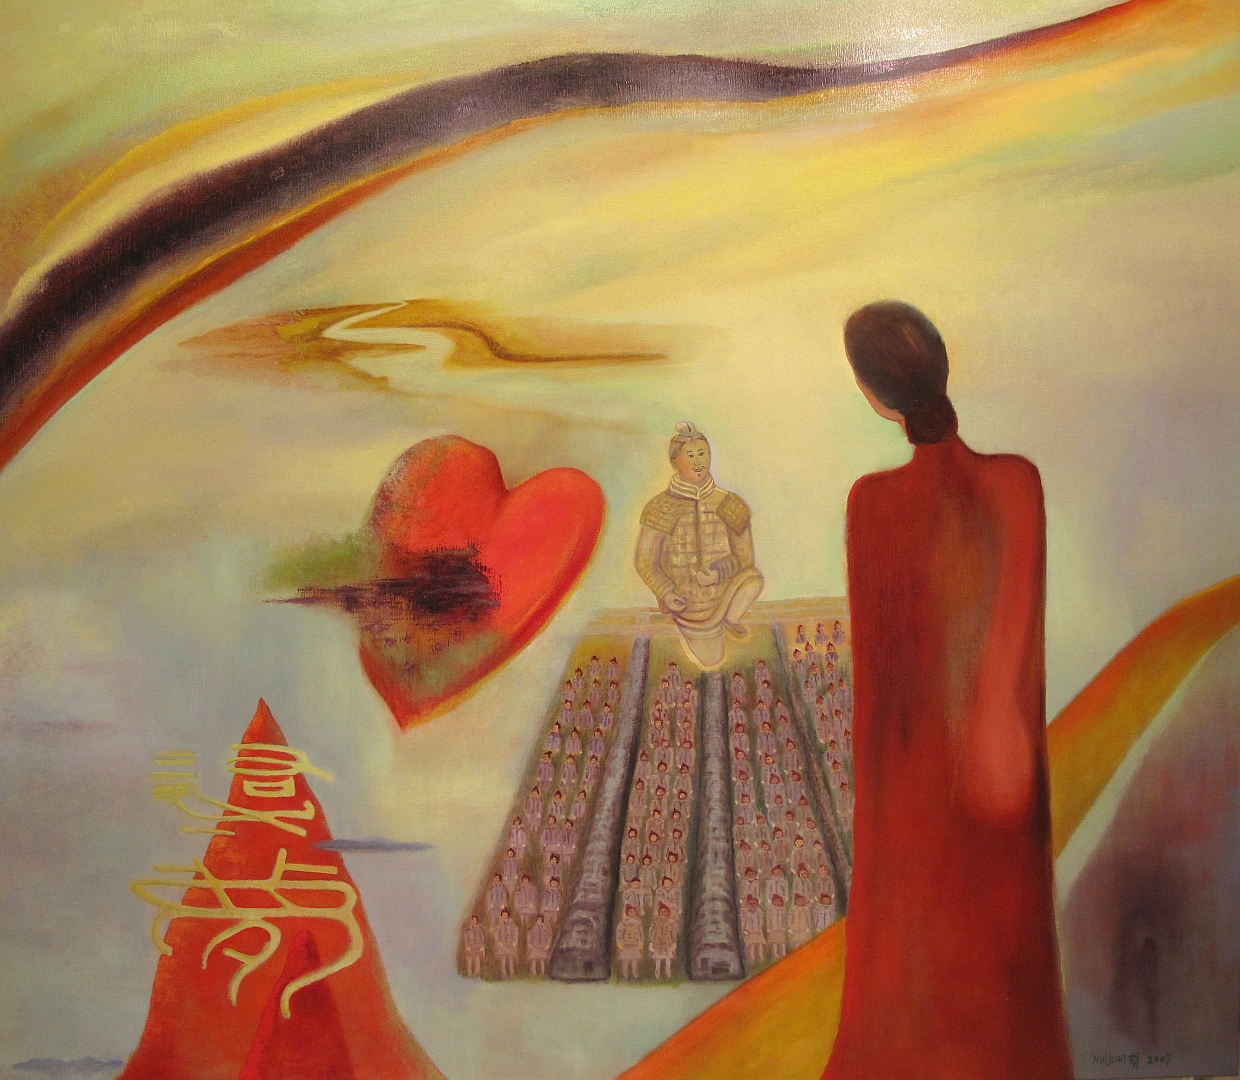 20, Dreaming 130x150 Oil on canvas 2007